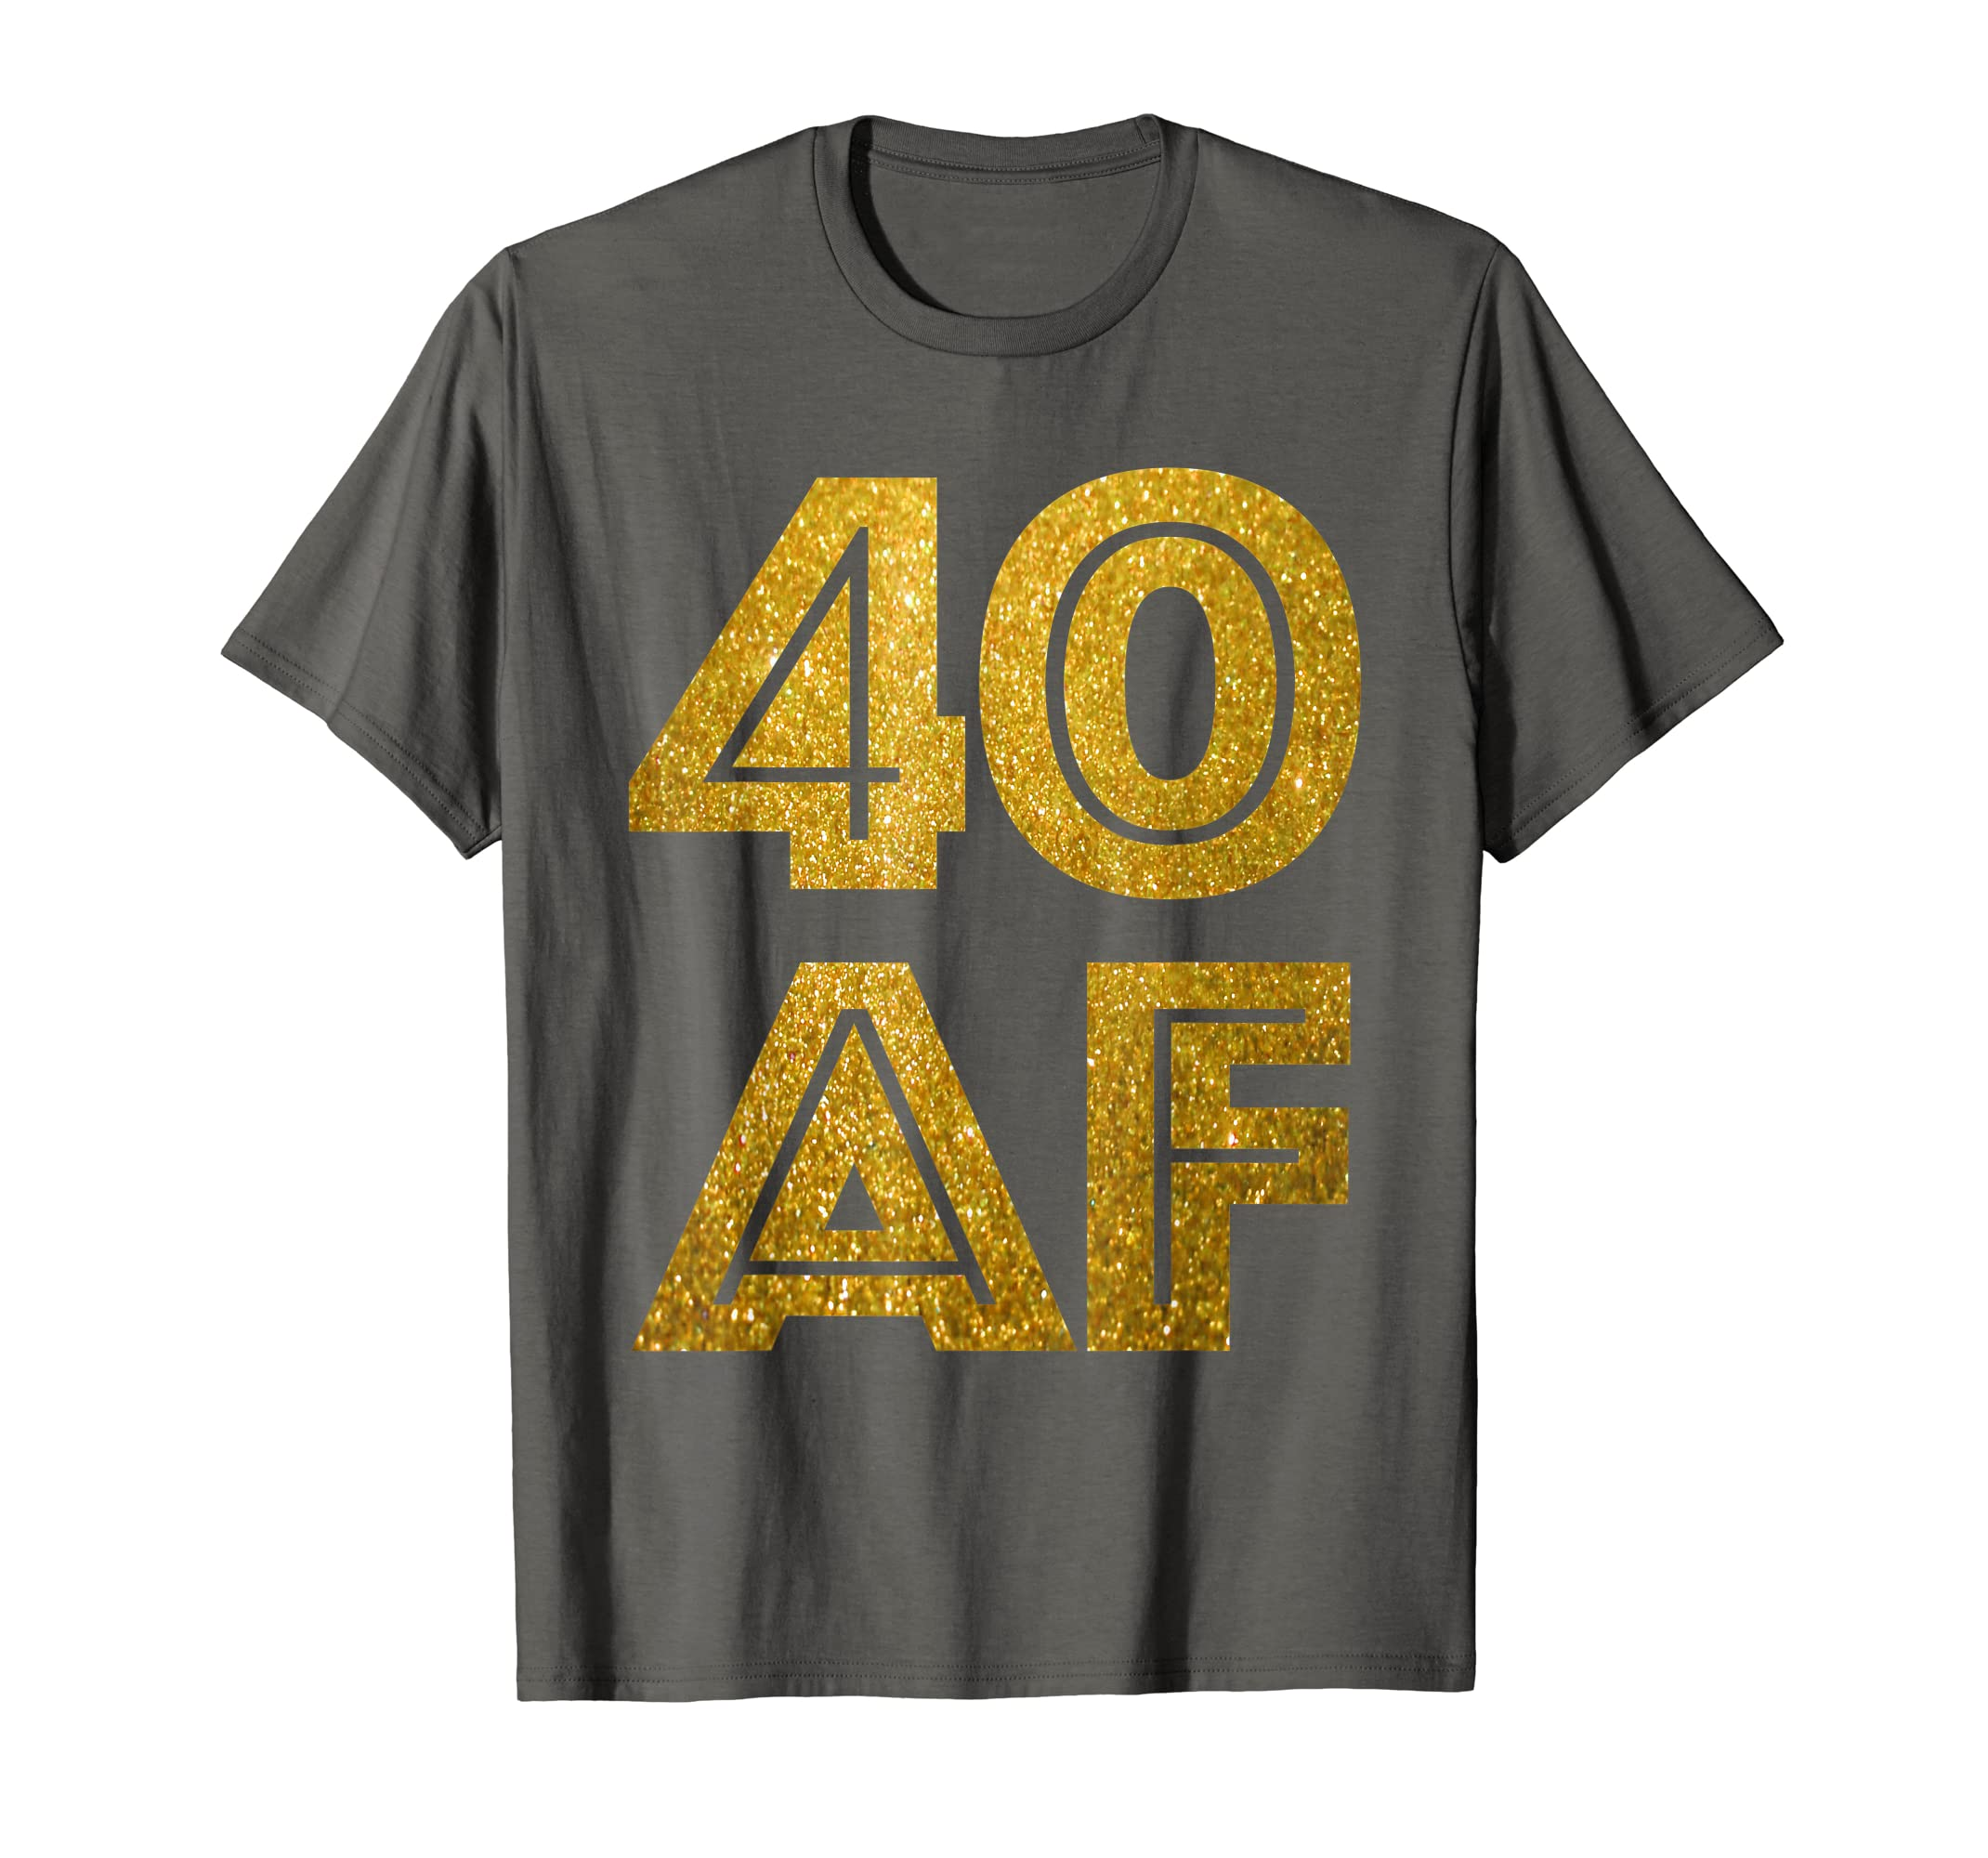 1e128992df15 Amazon.com  40th Birthday Shirt - 40 AF T-Shirt Fabulous at 40 Shirt   Clothing